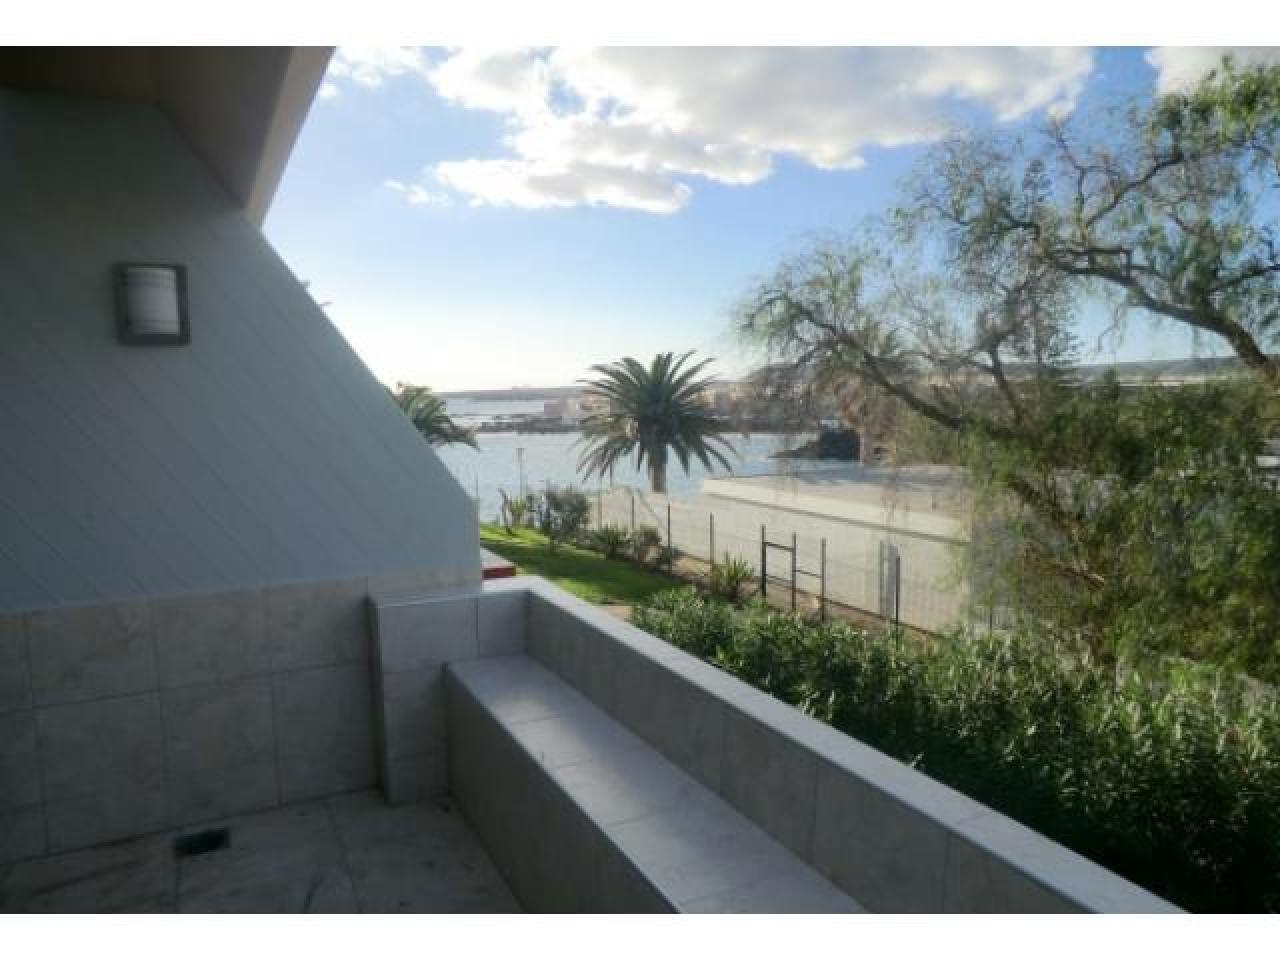 Real estate in Tenerife for sale » #646 - 5